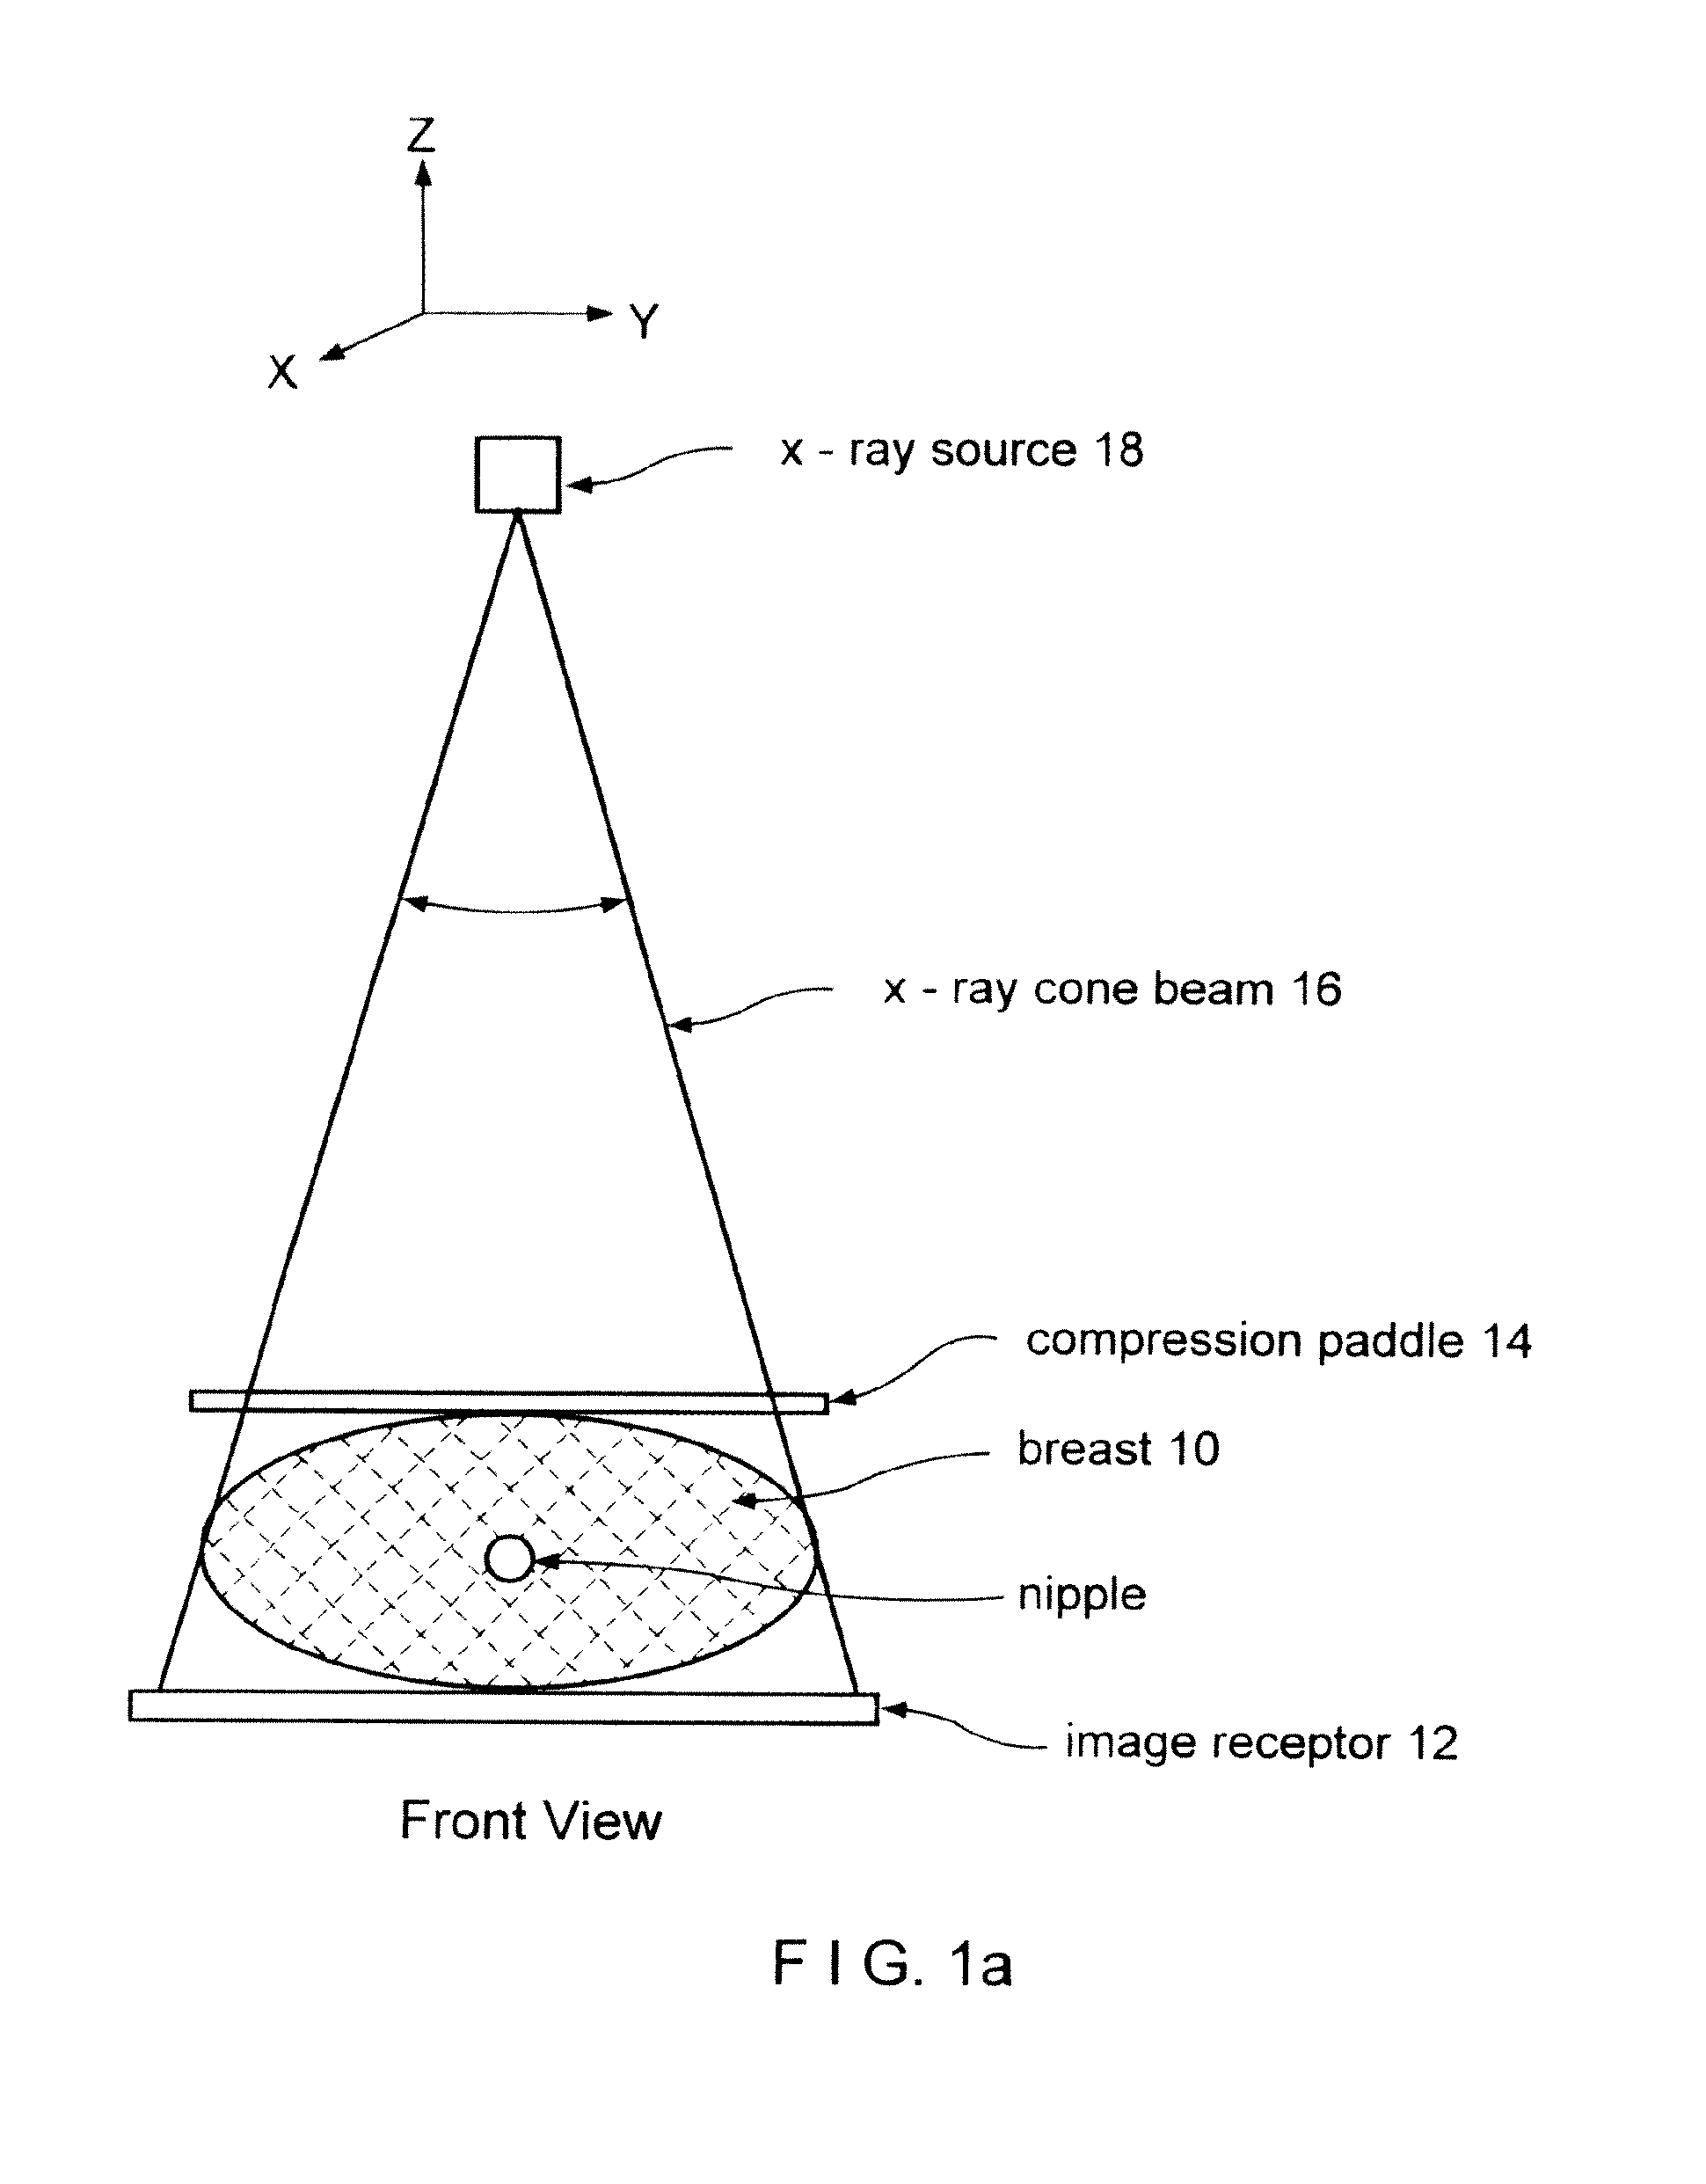 tomosynthesis images Purpose: to describe and evaluate a method of tomosynthesis breast imaging with a full-field digital mammographic system materials and methods: in this tomosynthesis method, low-radiation-dose images were acquired as the x-ray source was moved in an arc above the stationary breast and digital .